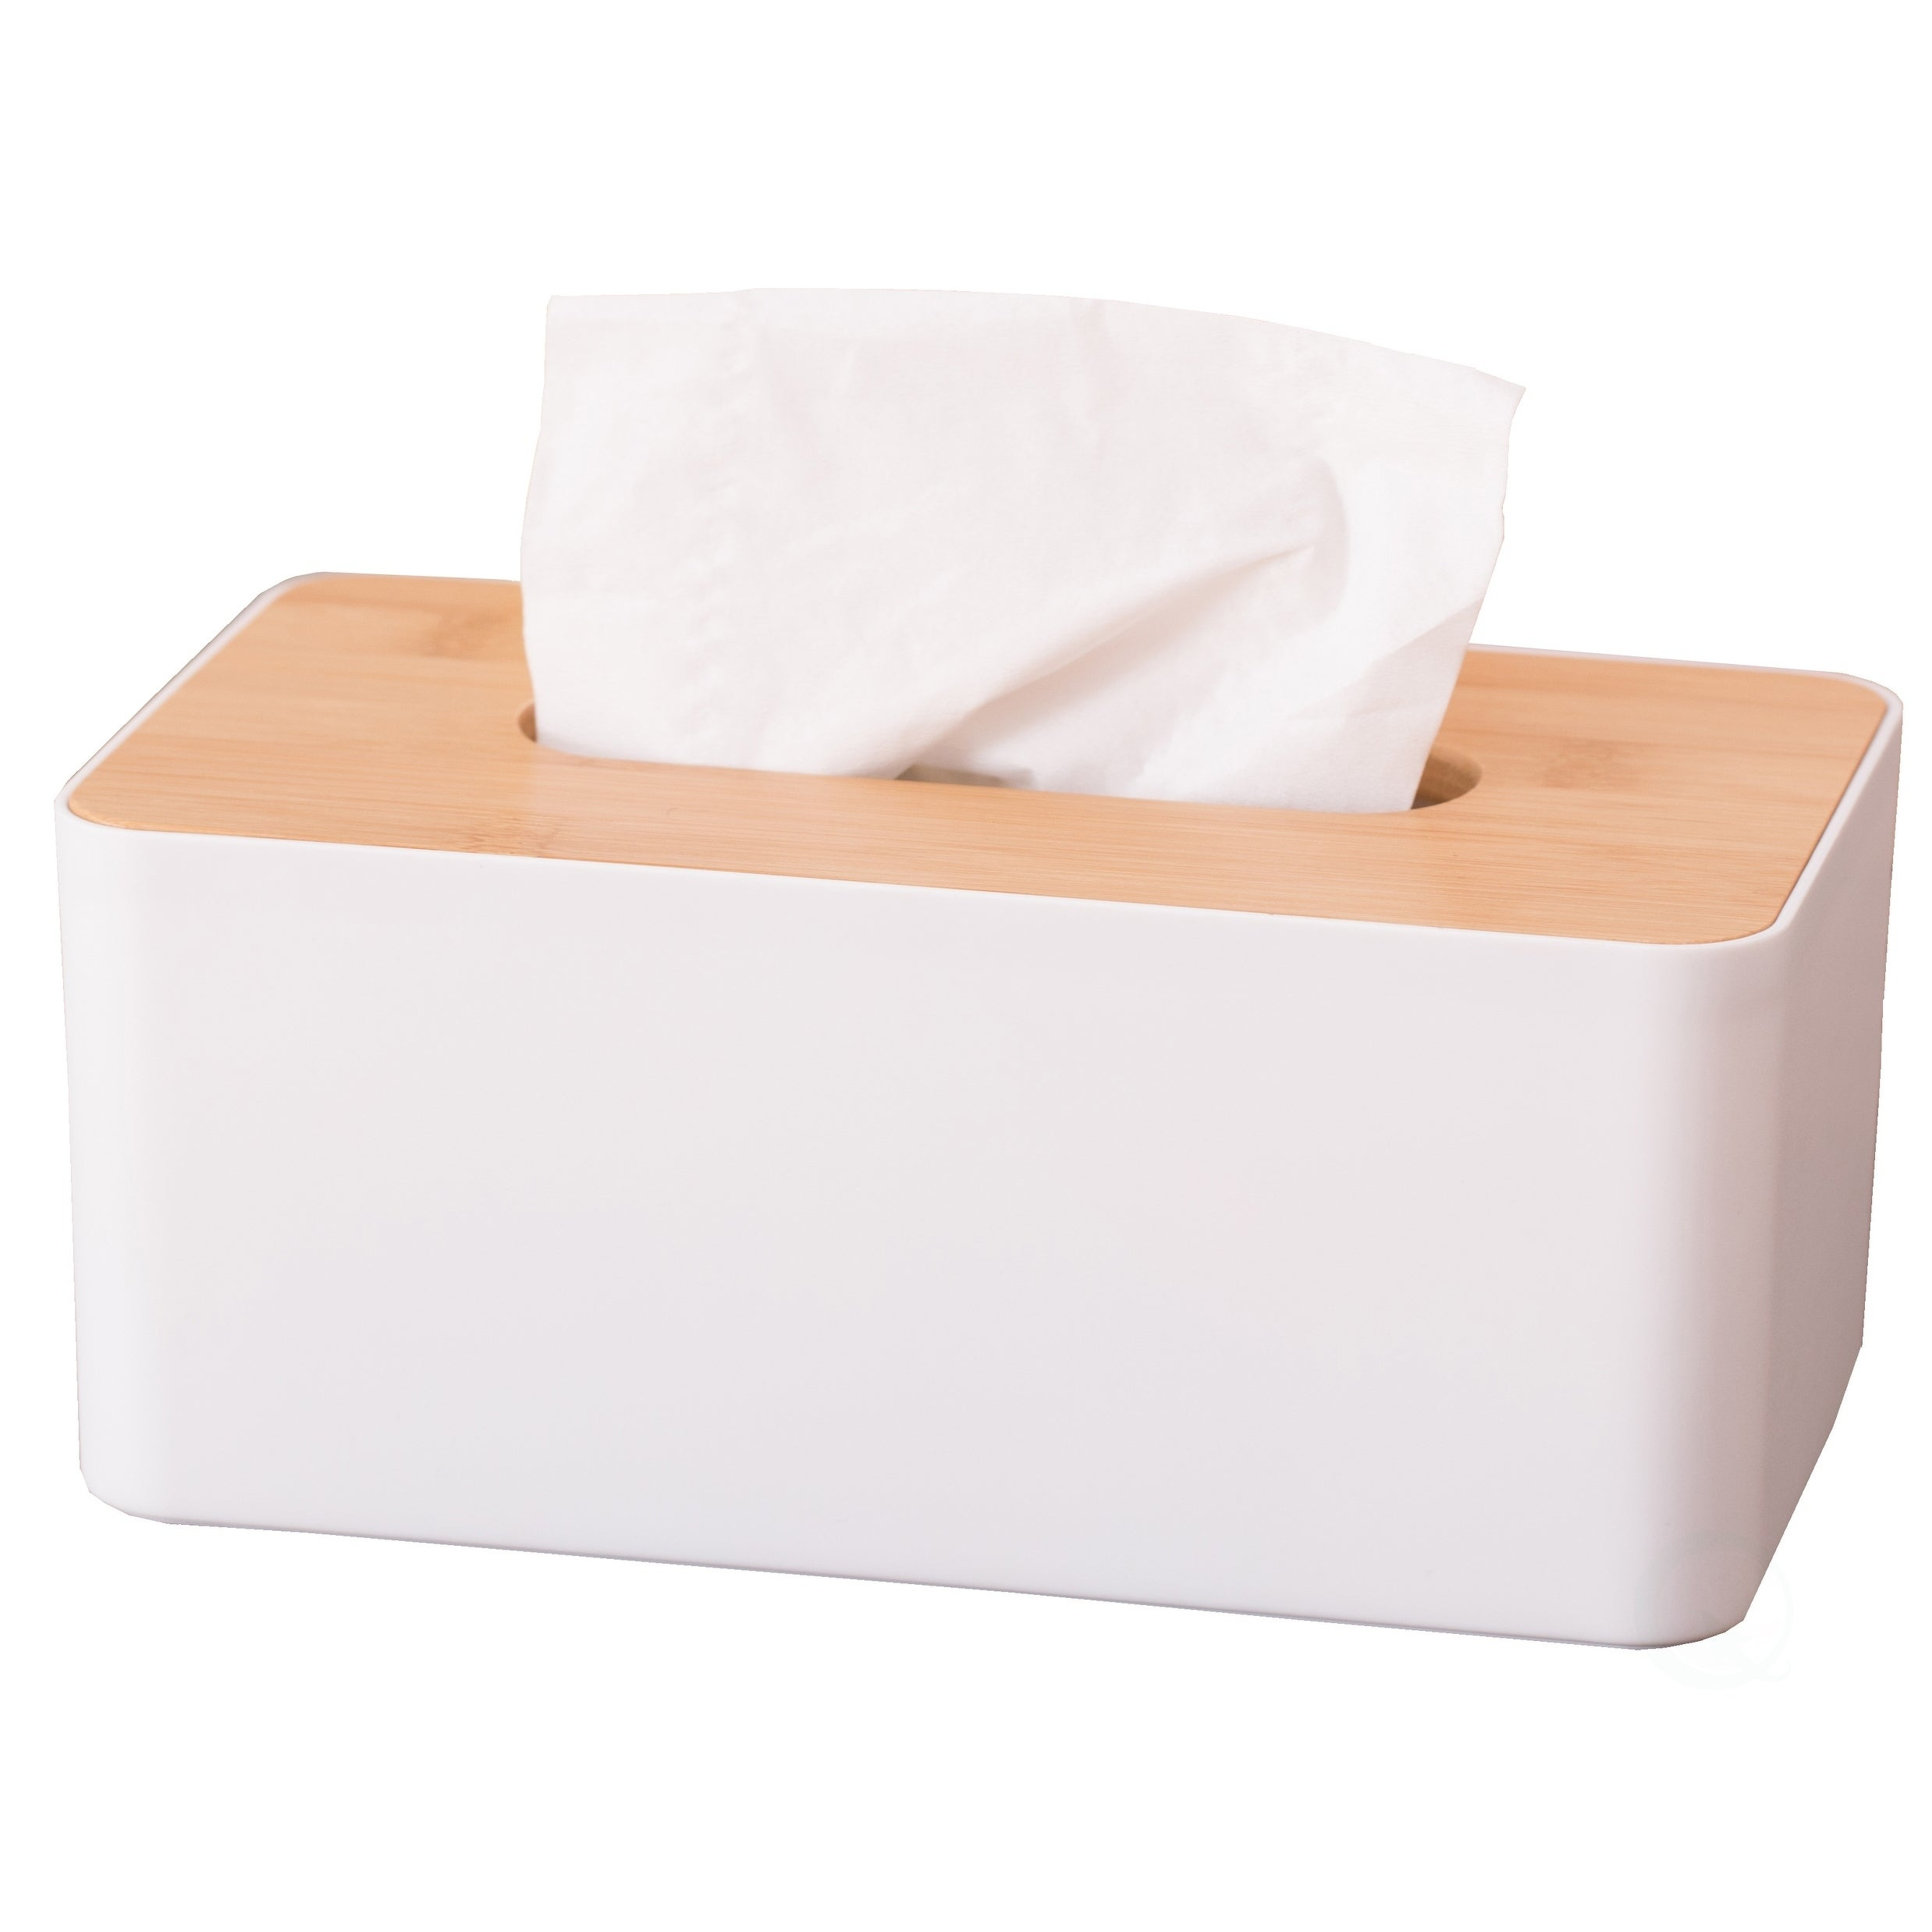 Juvale Tissue Box Wood Cover Holder Free Shipping Red White.. American Flag